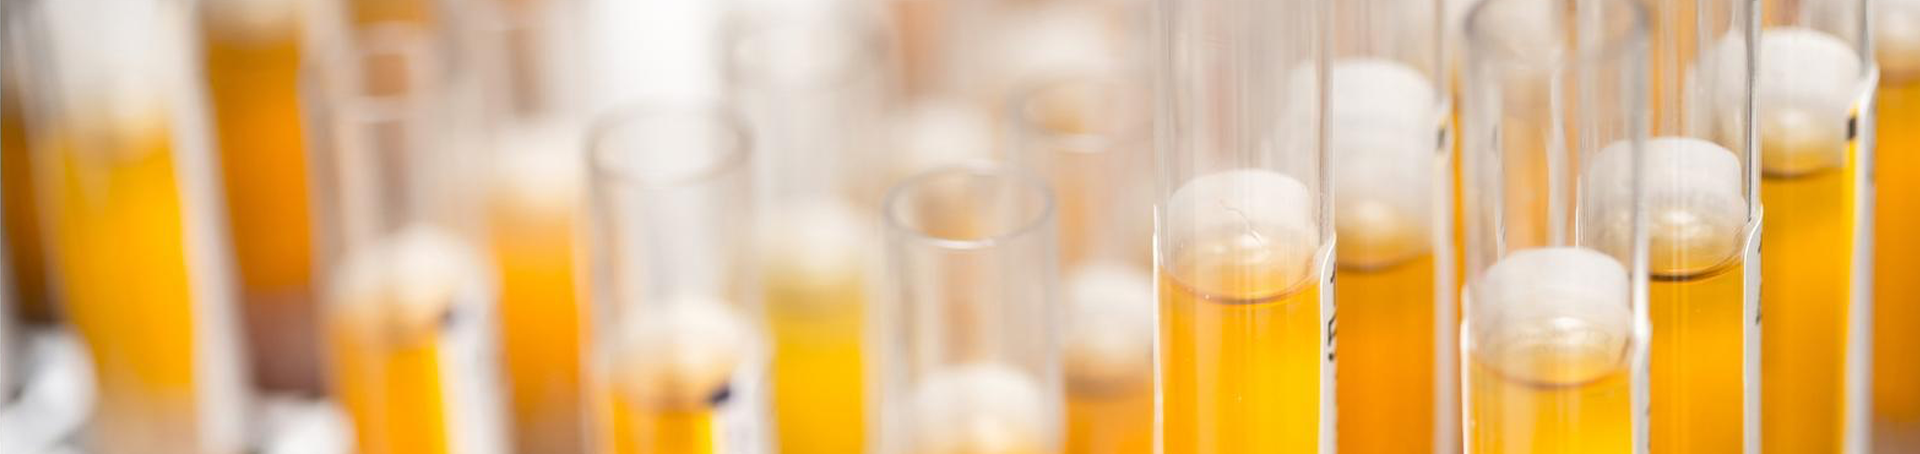 Test Tubes Research Image